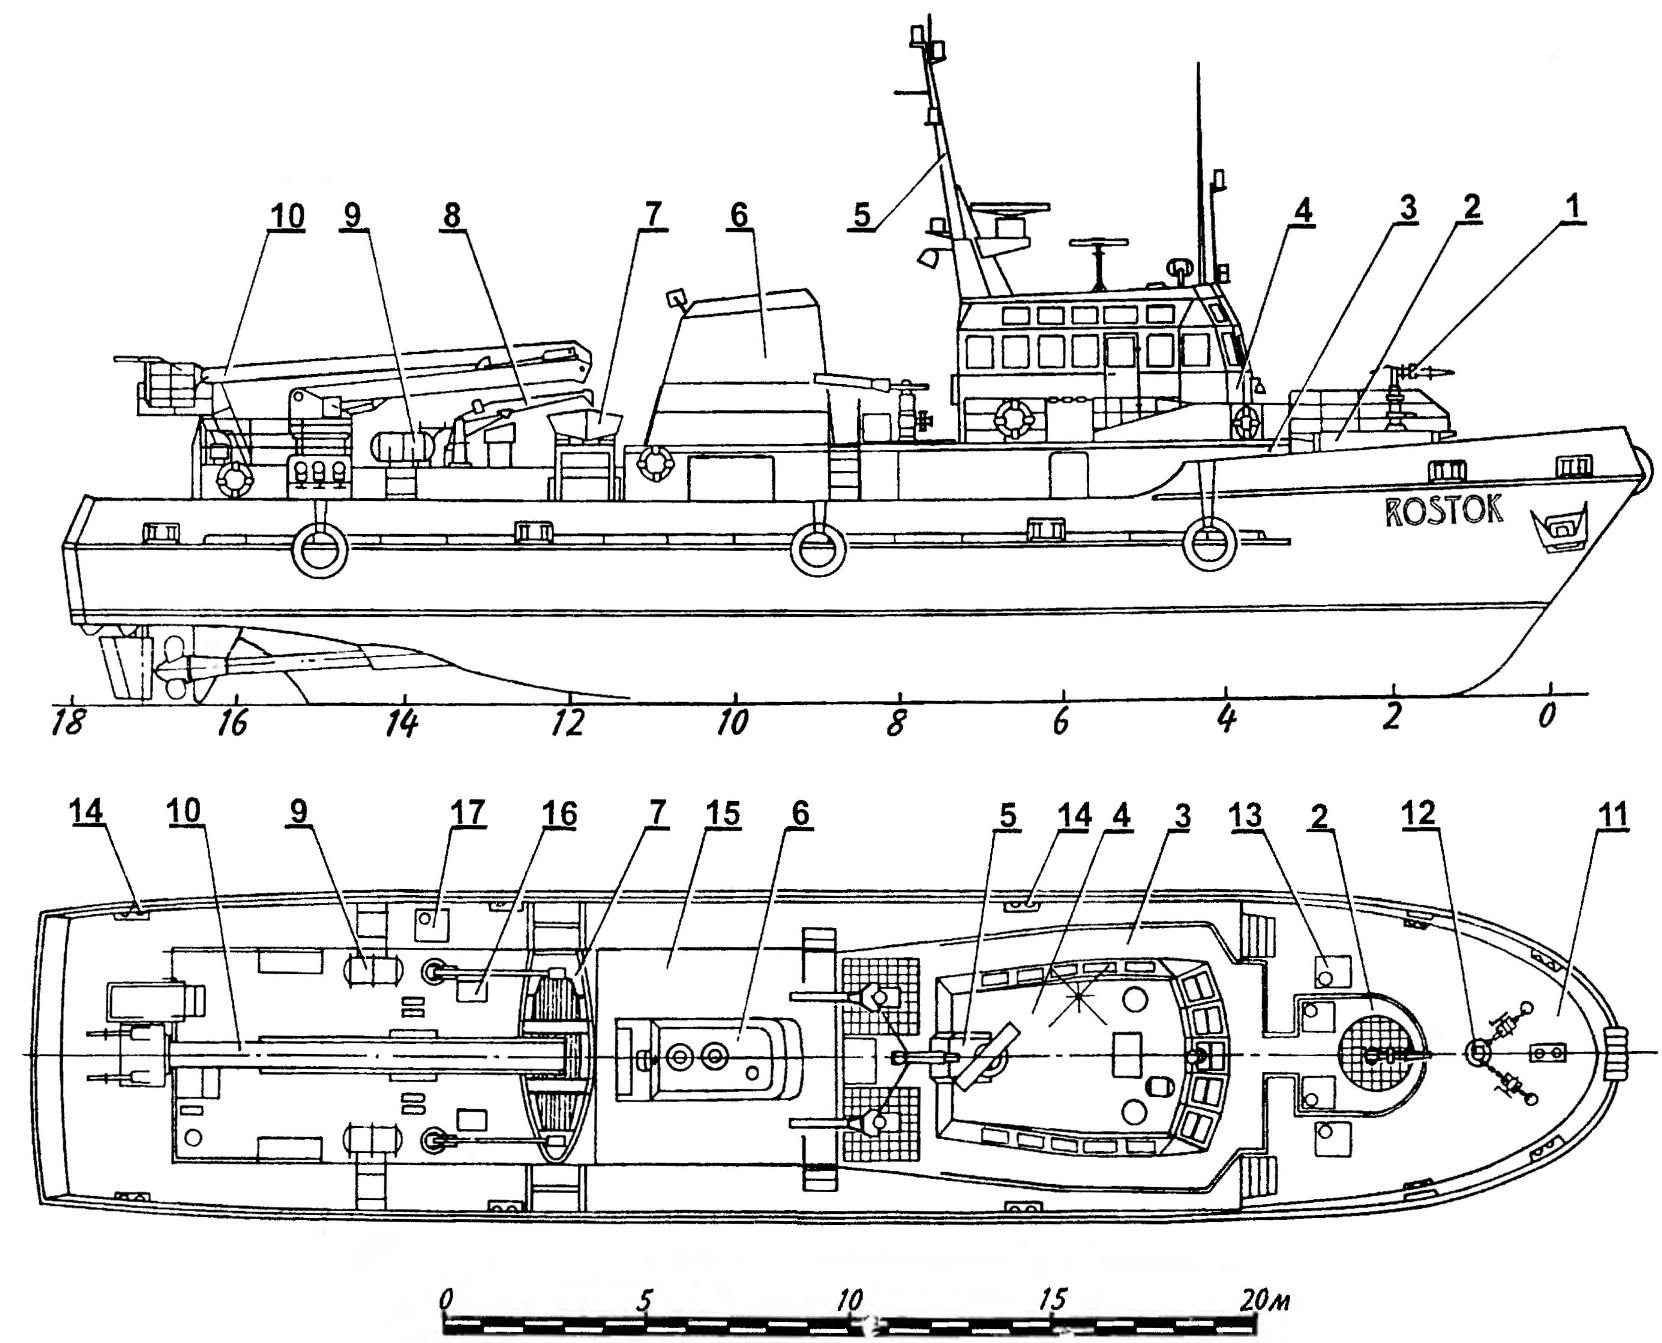 The layout of the fire and rescue boat ROSTOK